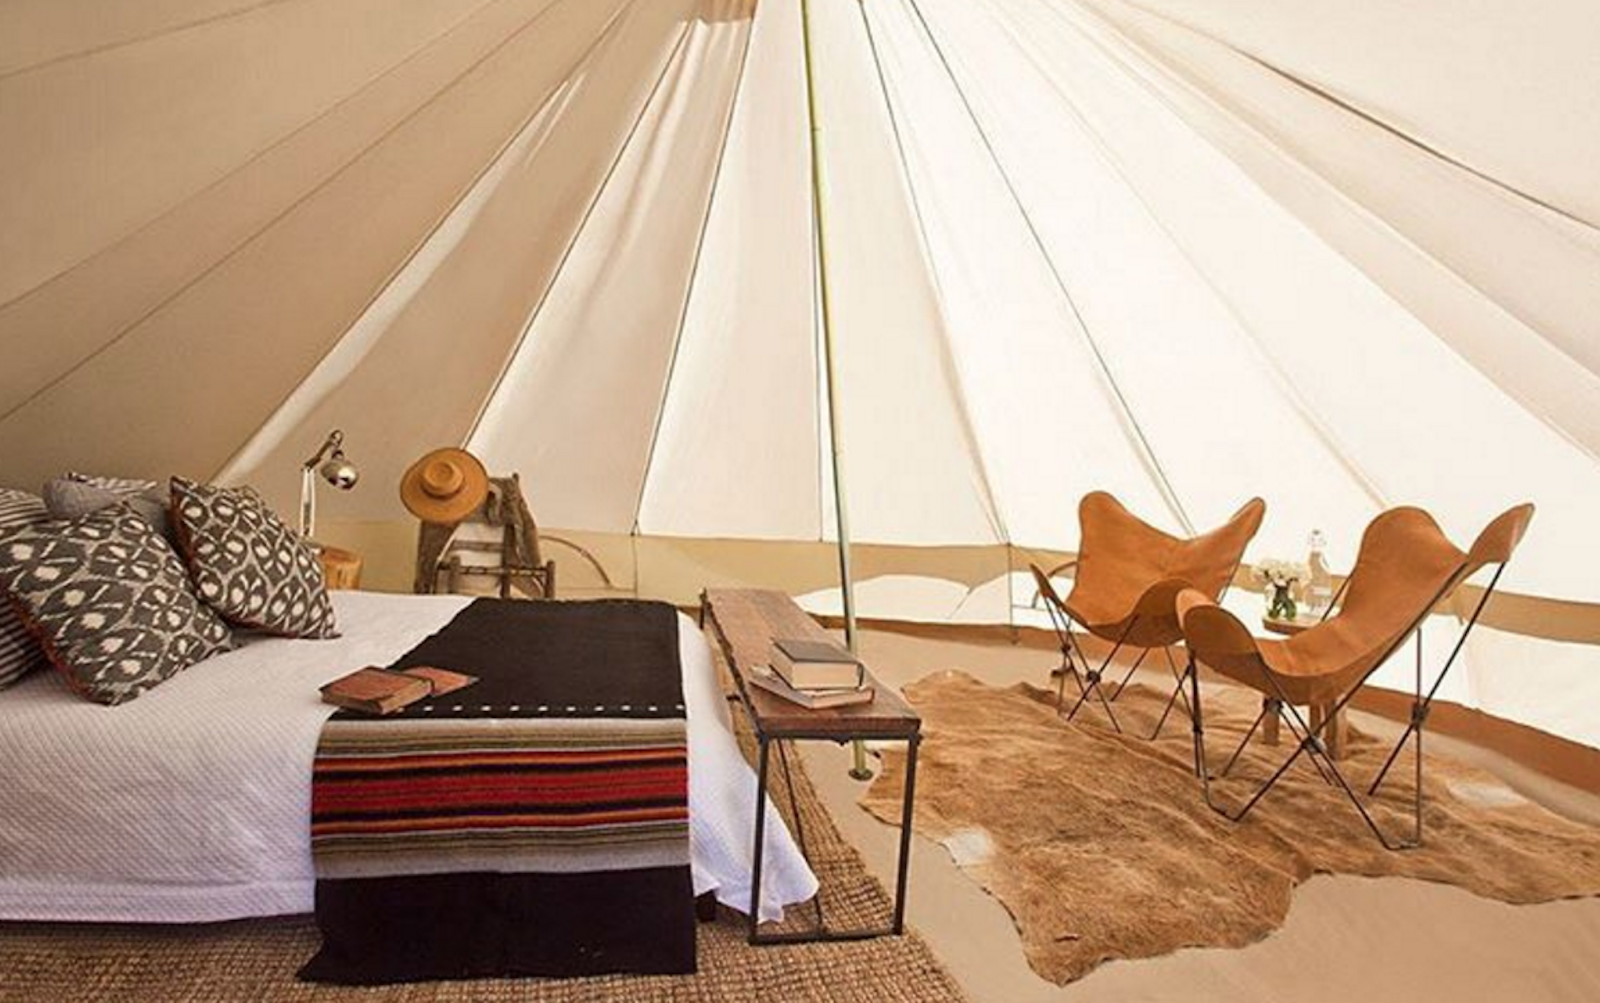 A glamping tent at Base Camp at Coachella music festival